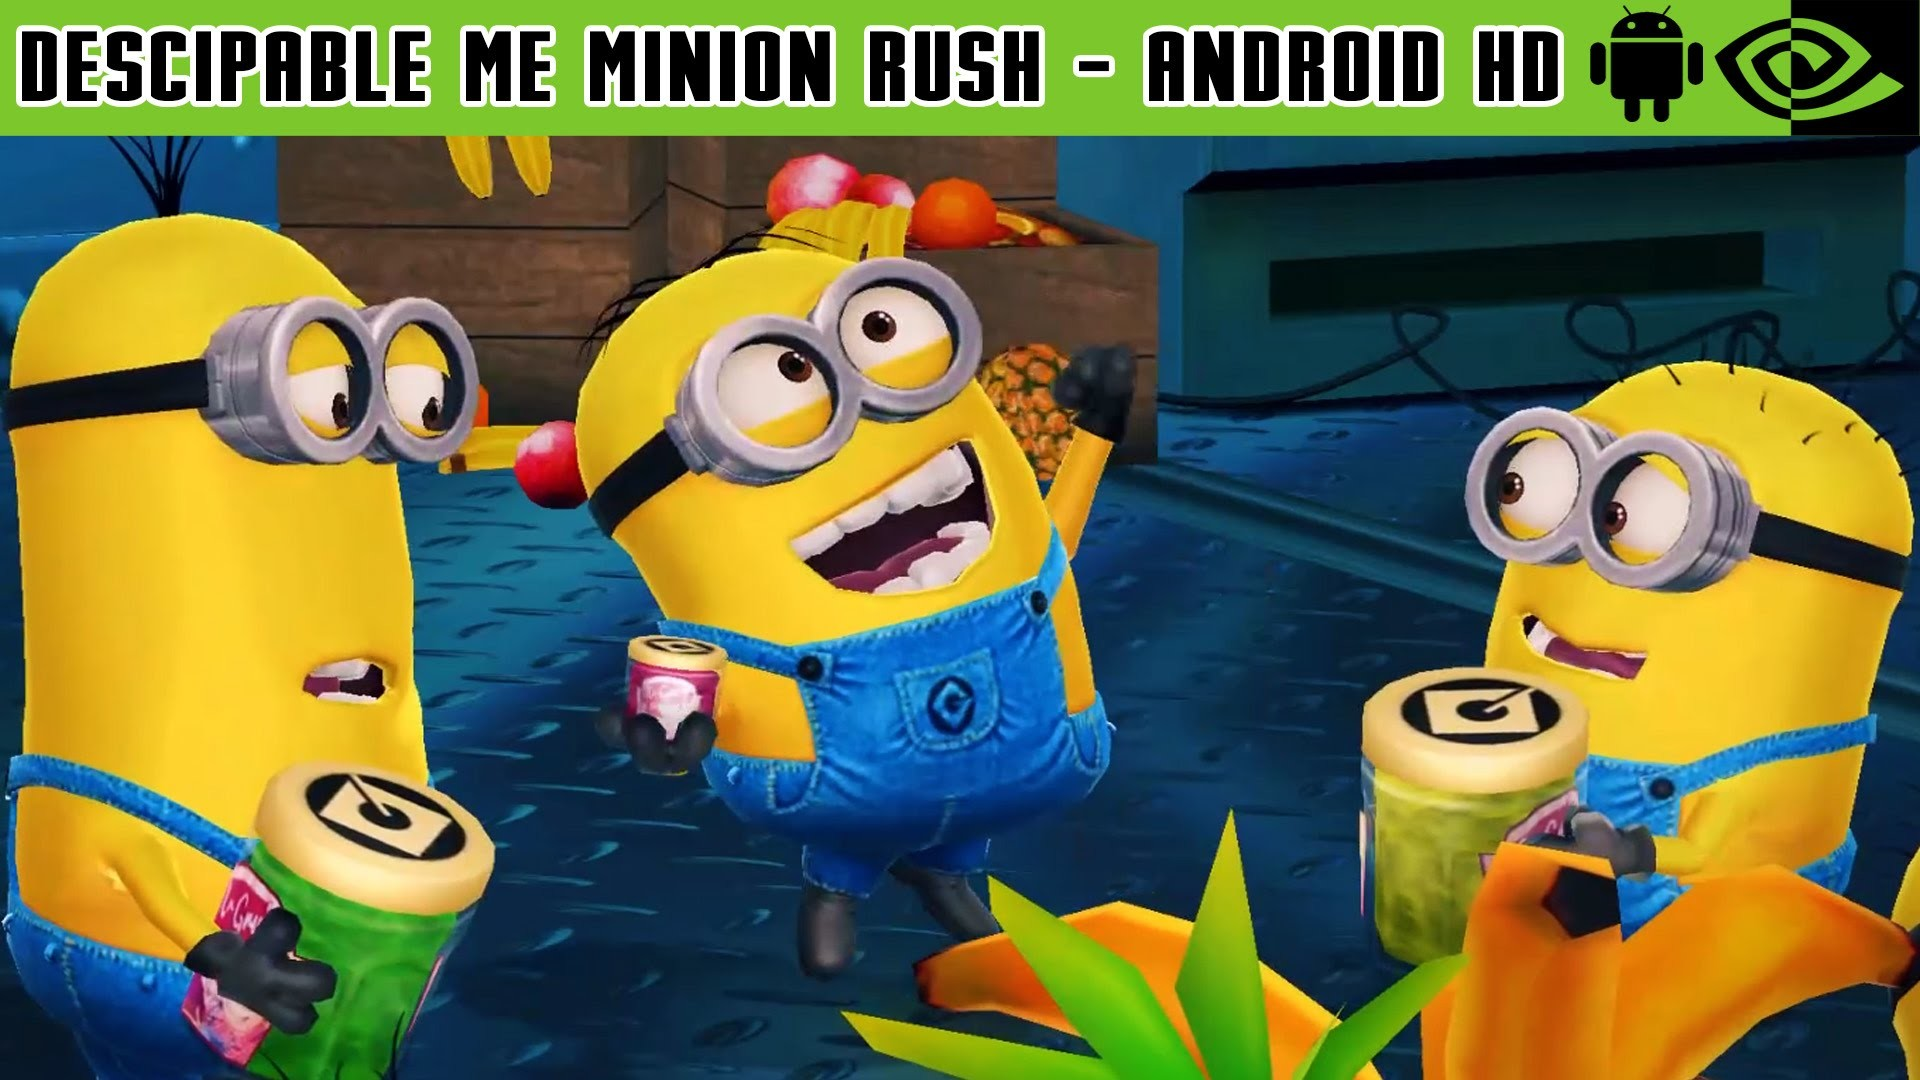 Descipable Me Minion Rush – Gameplay Nvidia Shield Tablet Android 1080p ( Android Games HD) – YouTube